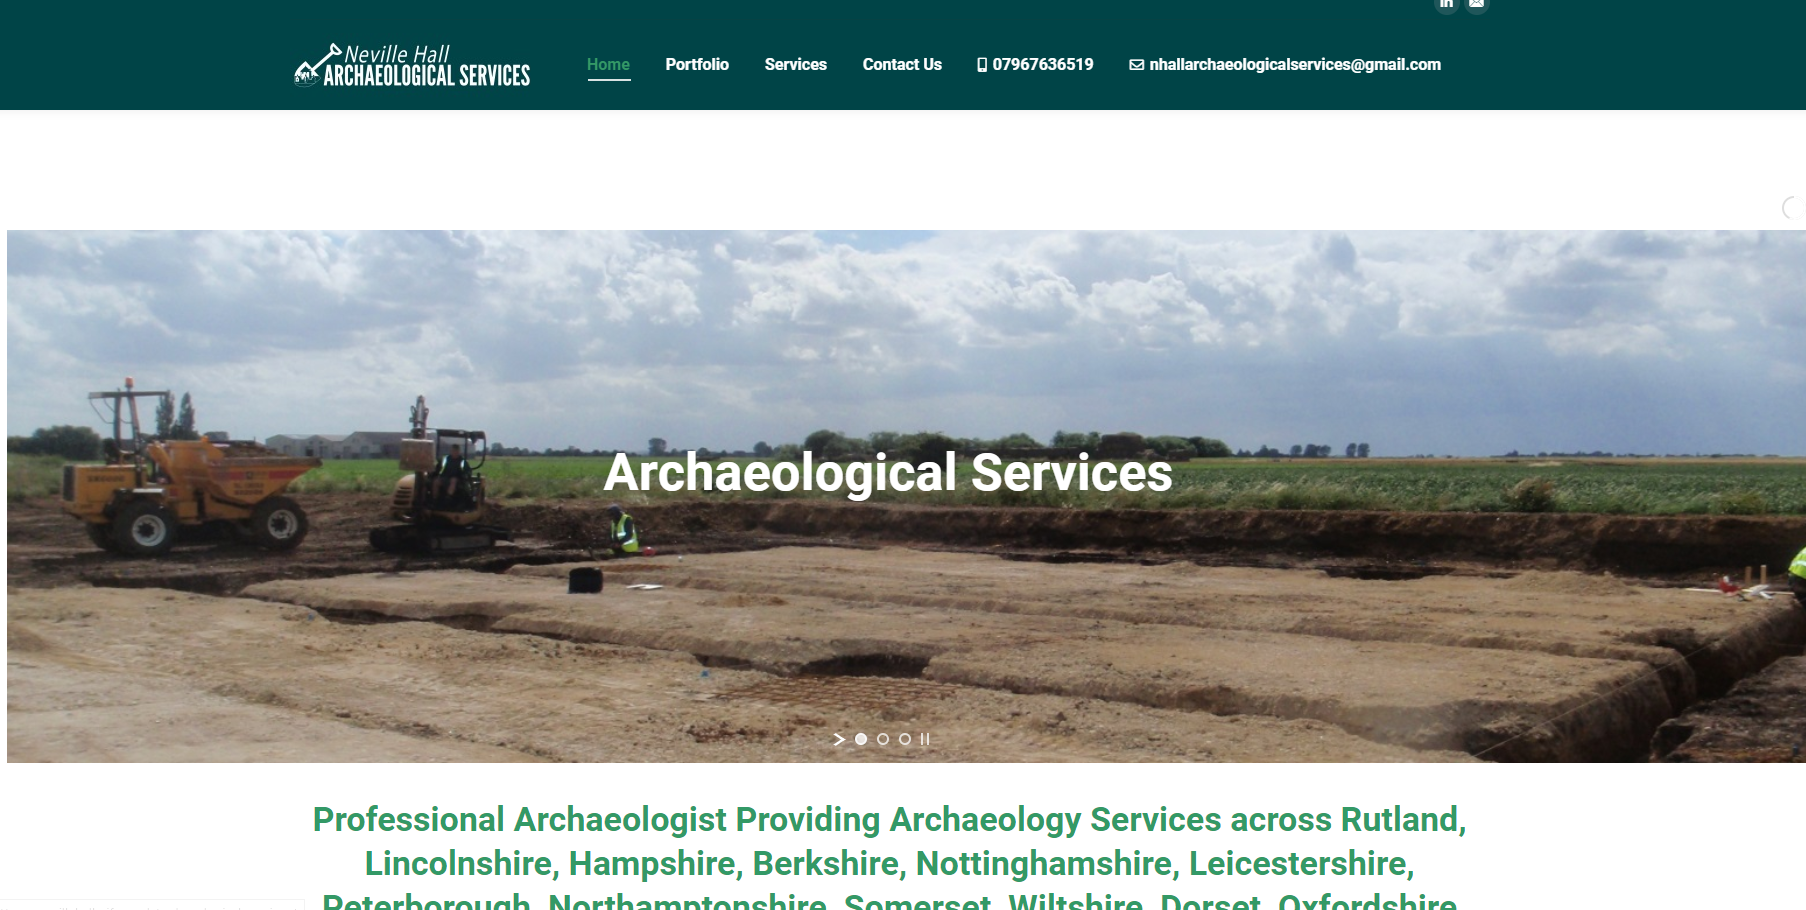 website Neville Hall Archaeological Services